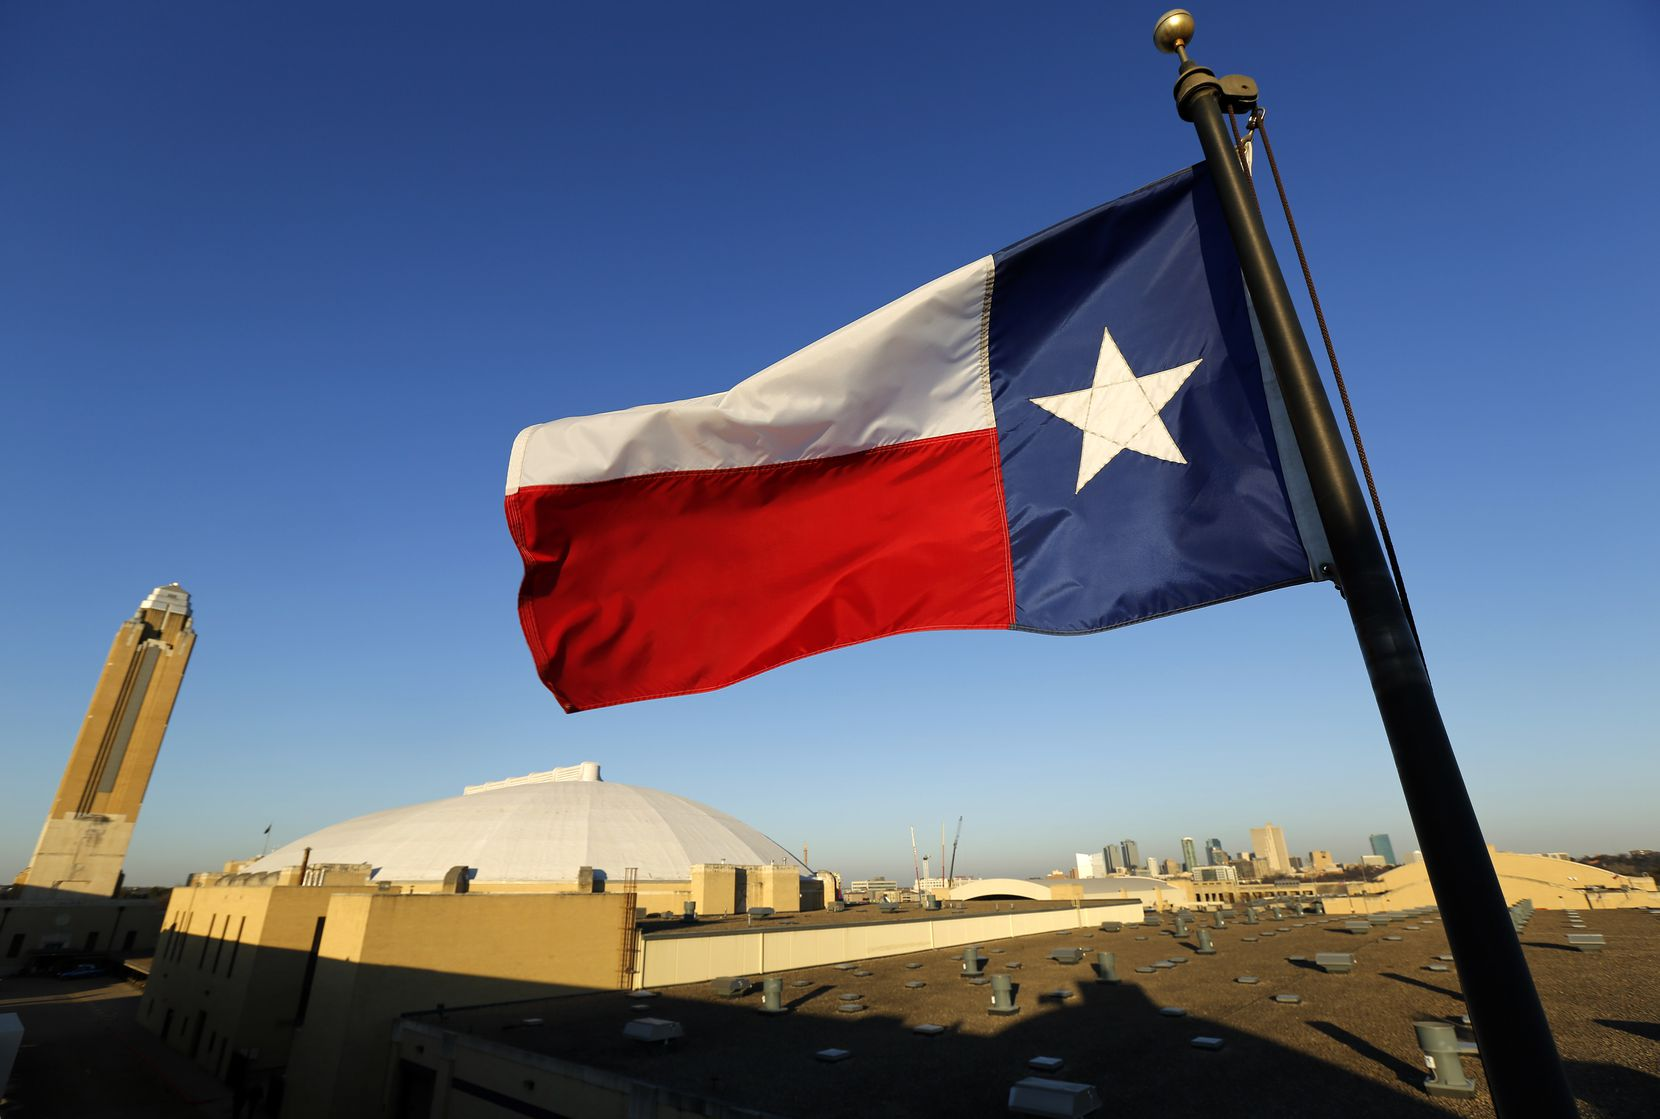 The Texas flag waves above the Pioneer Tower (from left), Will Rogers Memorial Coliseum and Fort Worth skyline during the Fort Worth Stock Show and Rodeo, Wednesday, January 30, 2019.